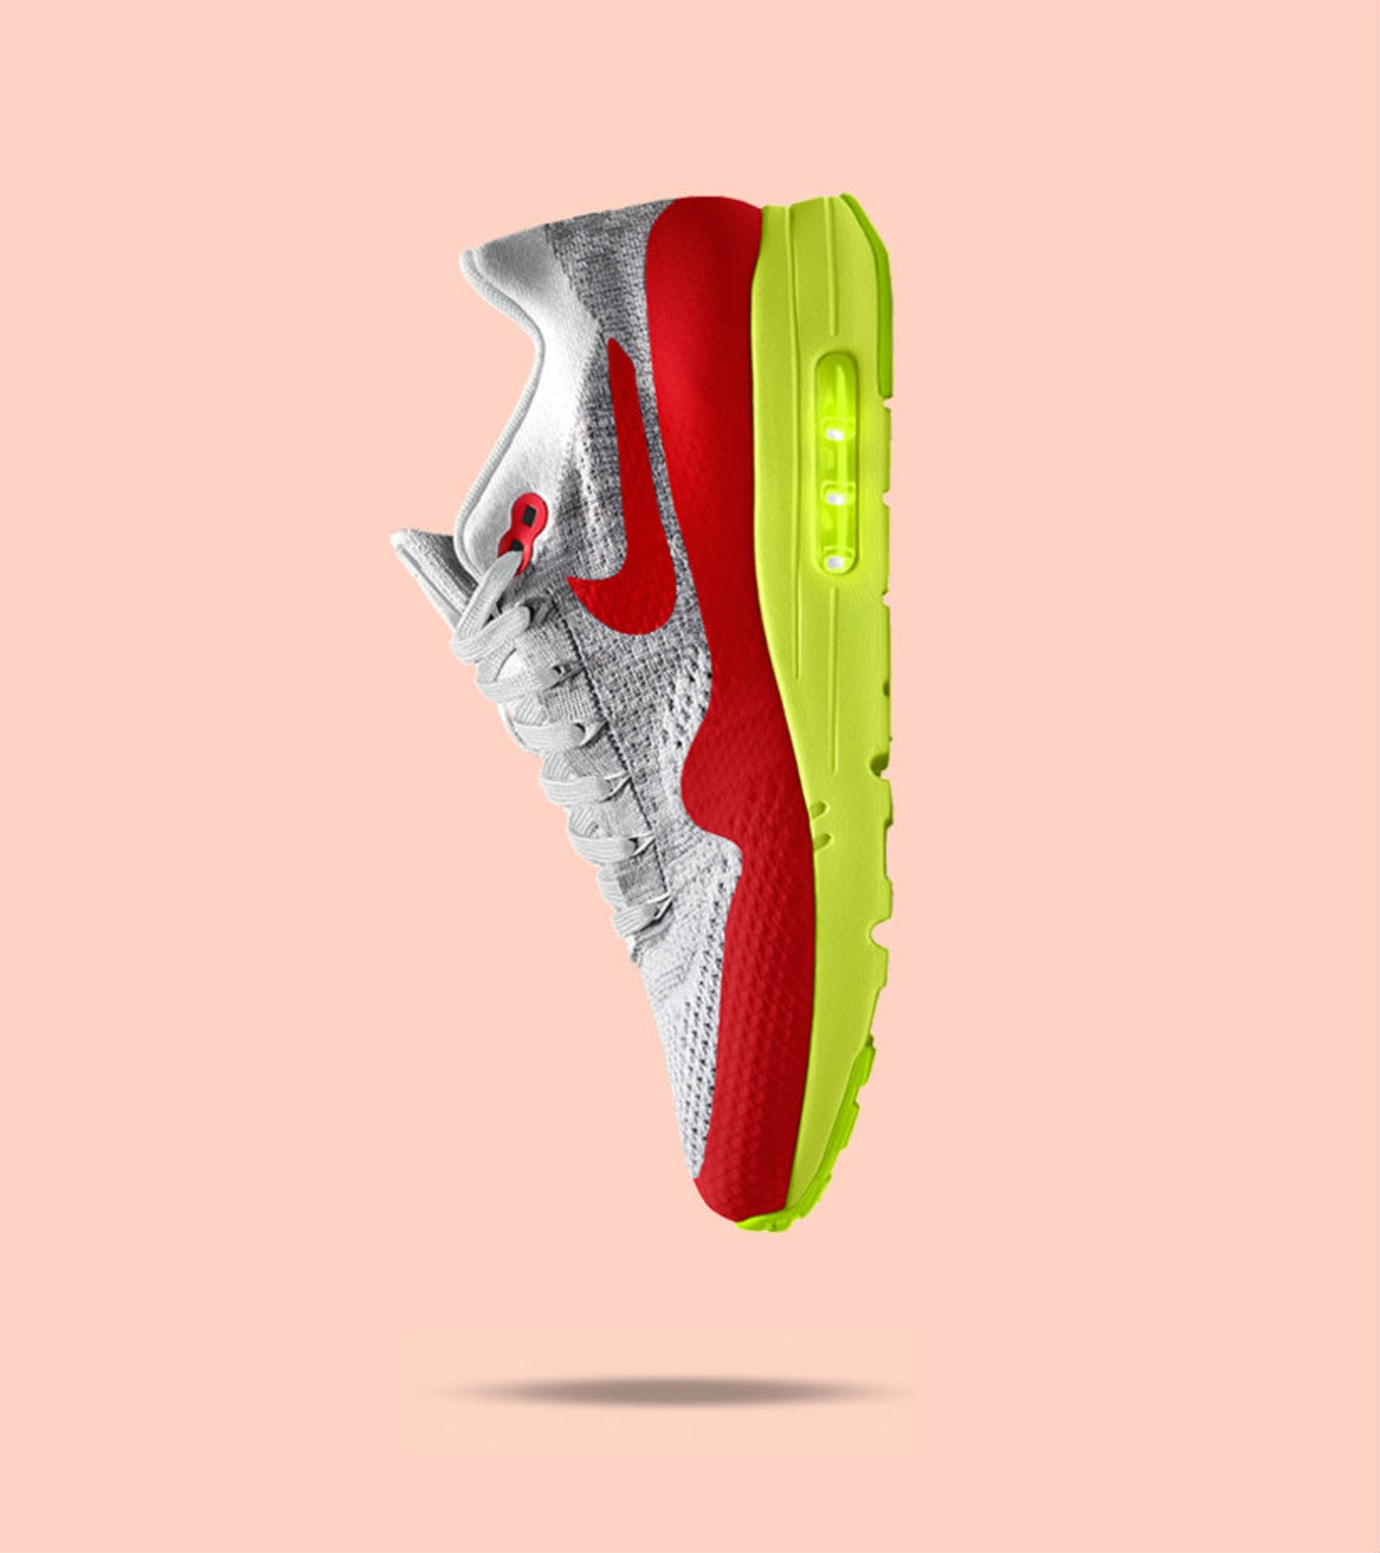 Nike iD Air Max Day 2017 (1)